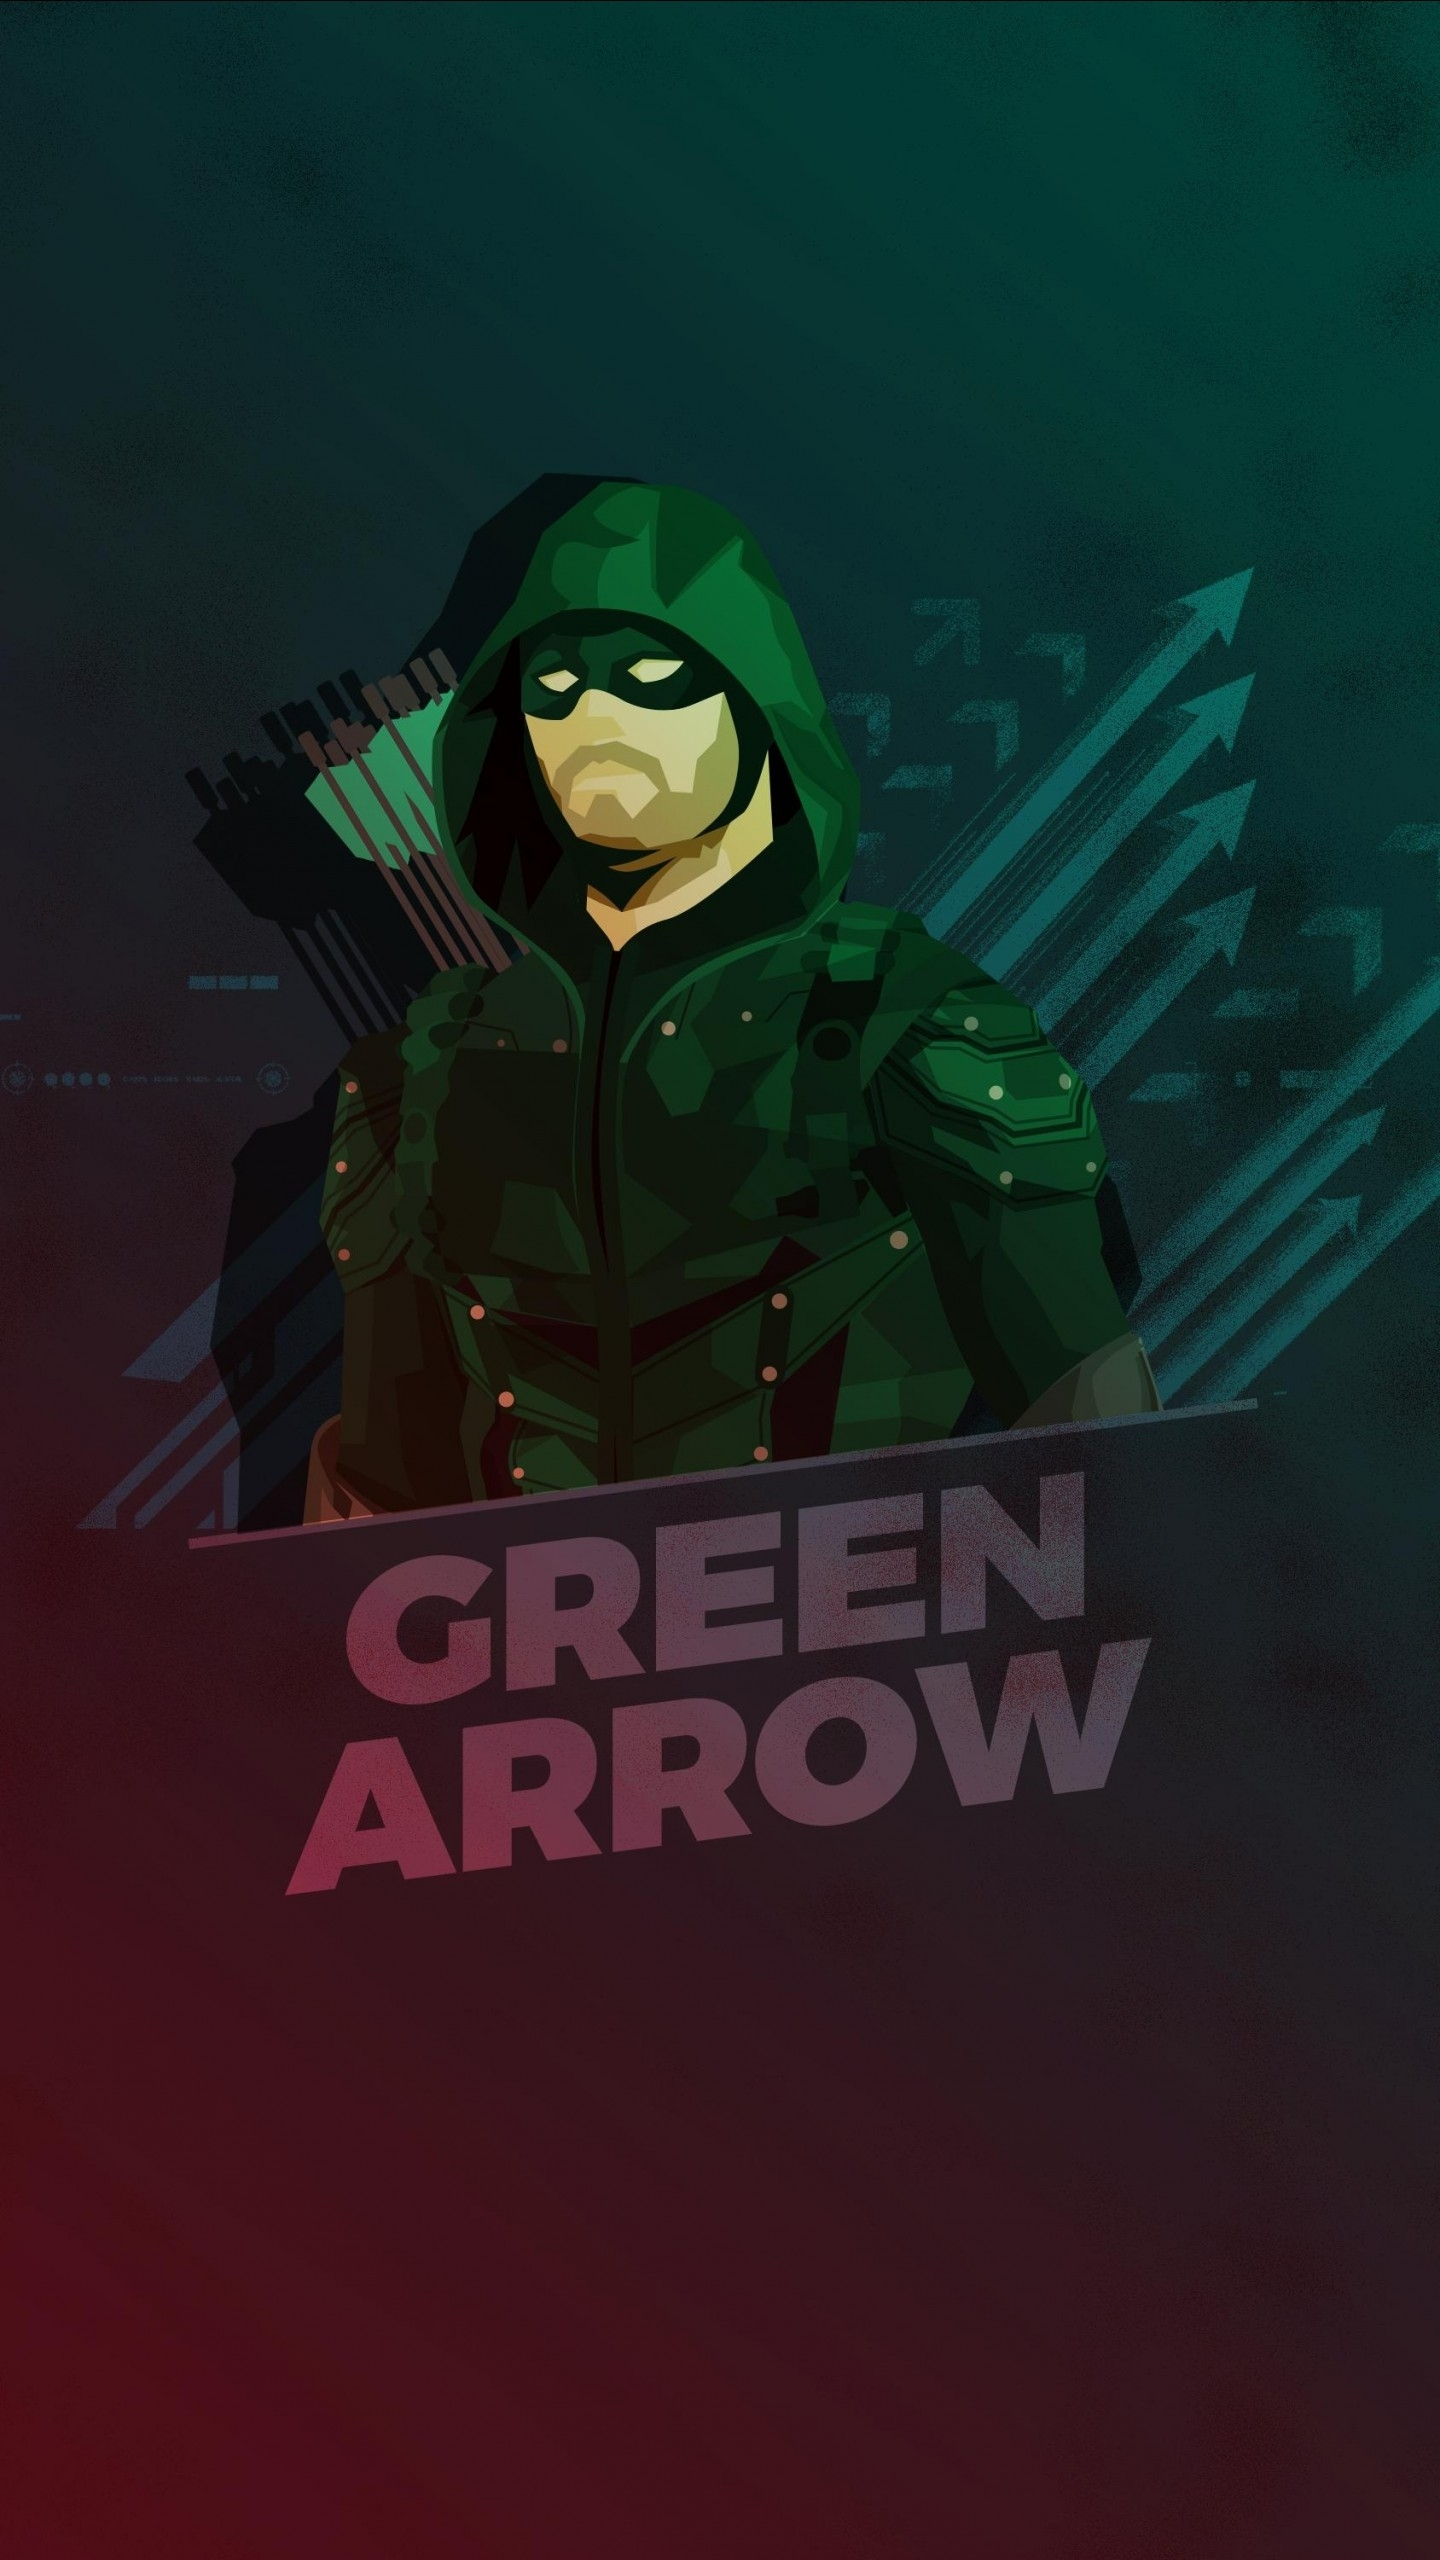 green arrow minimal artwork hd wallpapers | hd wallpapers | id #21399